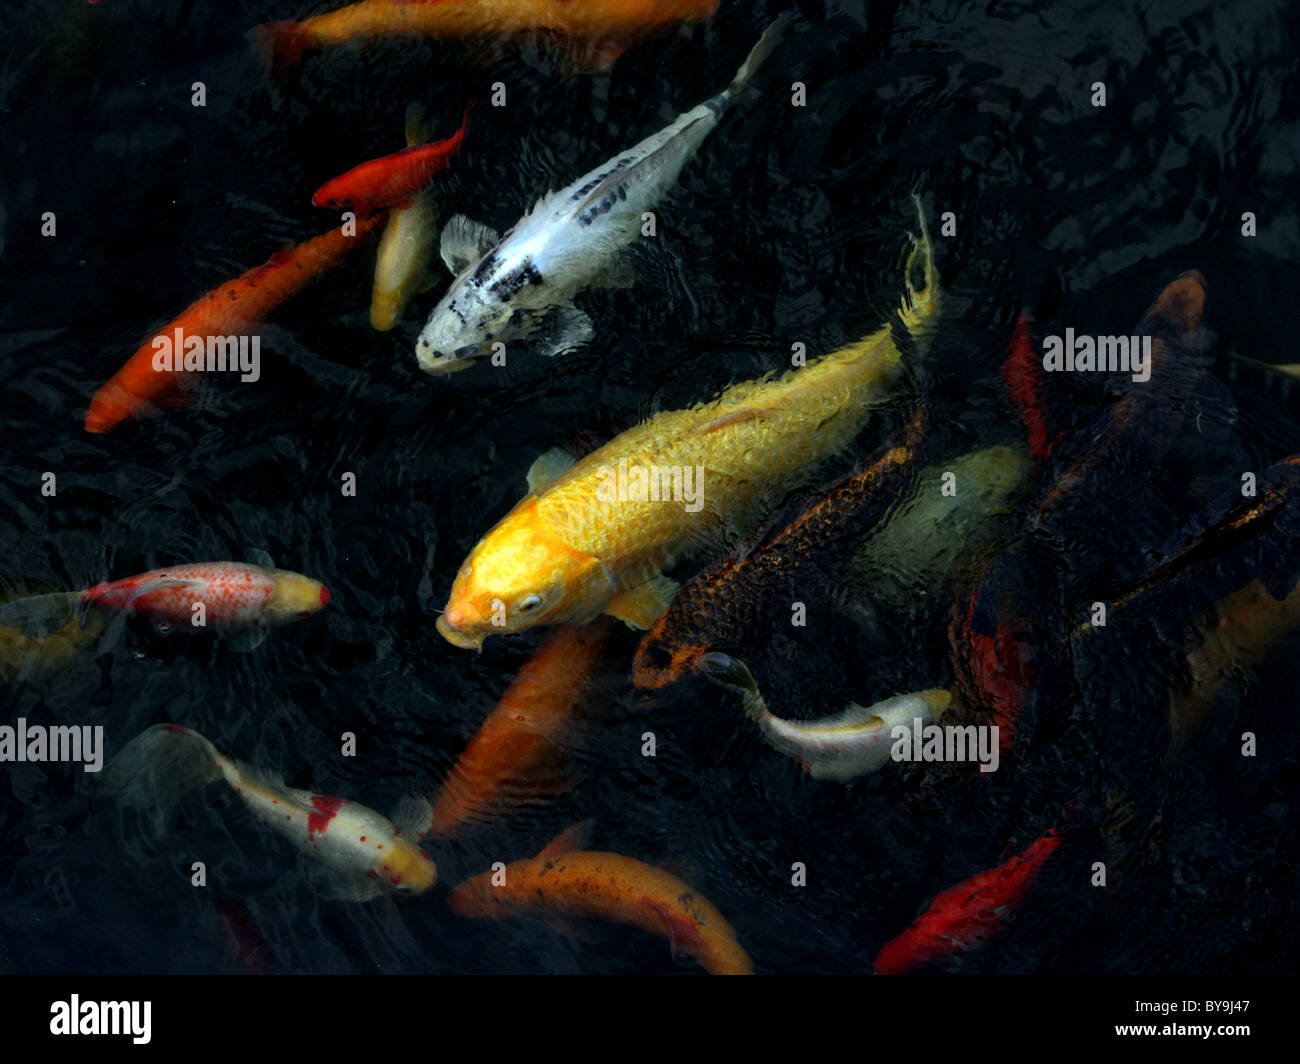 A selection of koi carp in a pond. - Stock Image